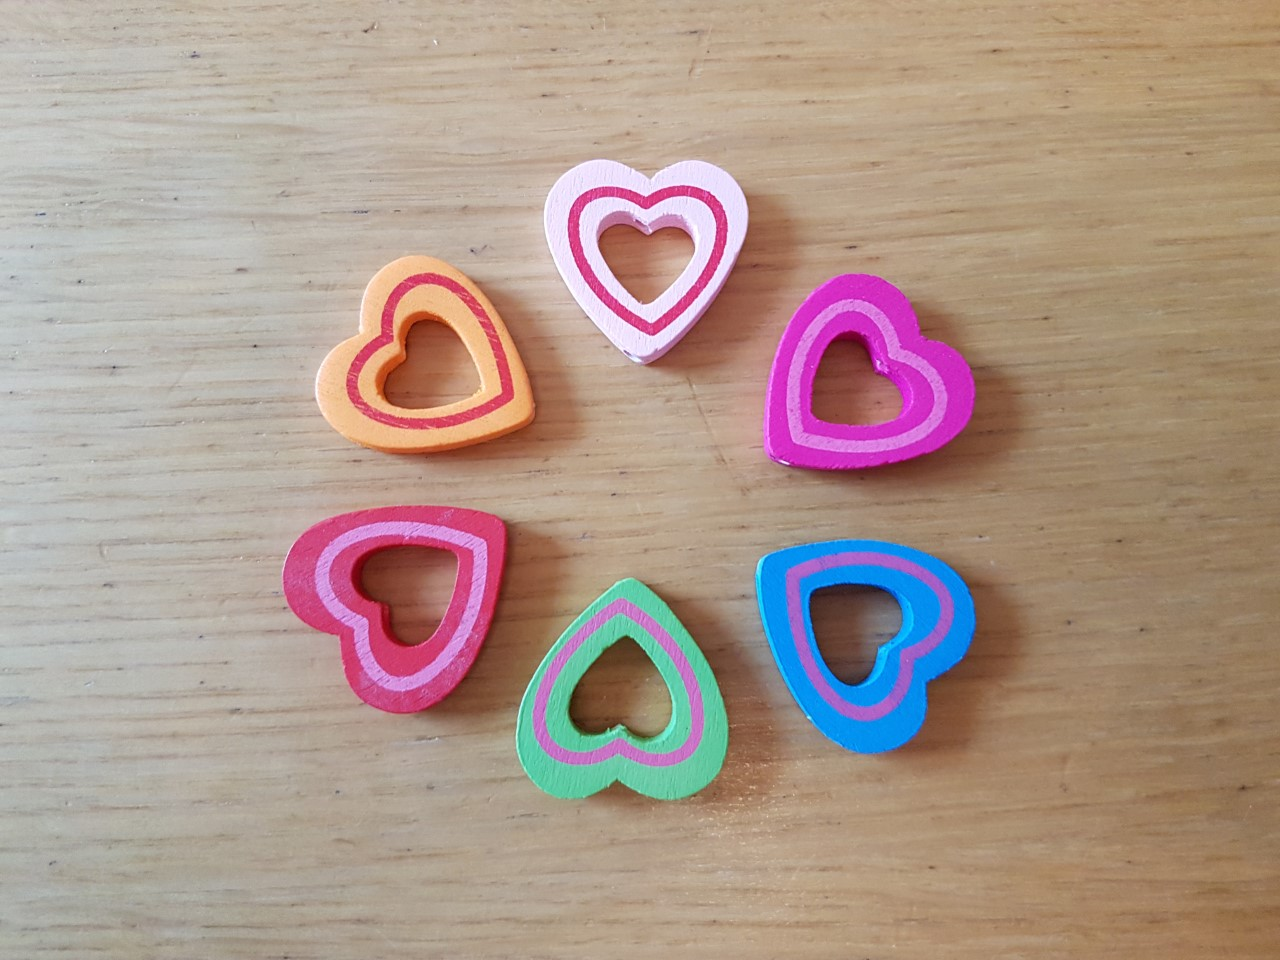 Wooden Shaped Heart With Whole